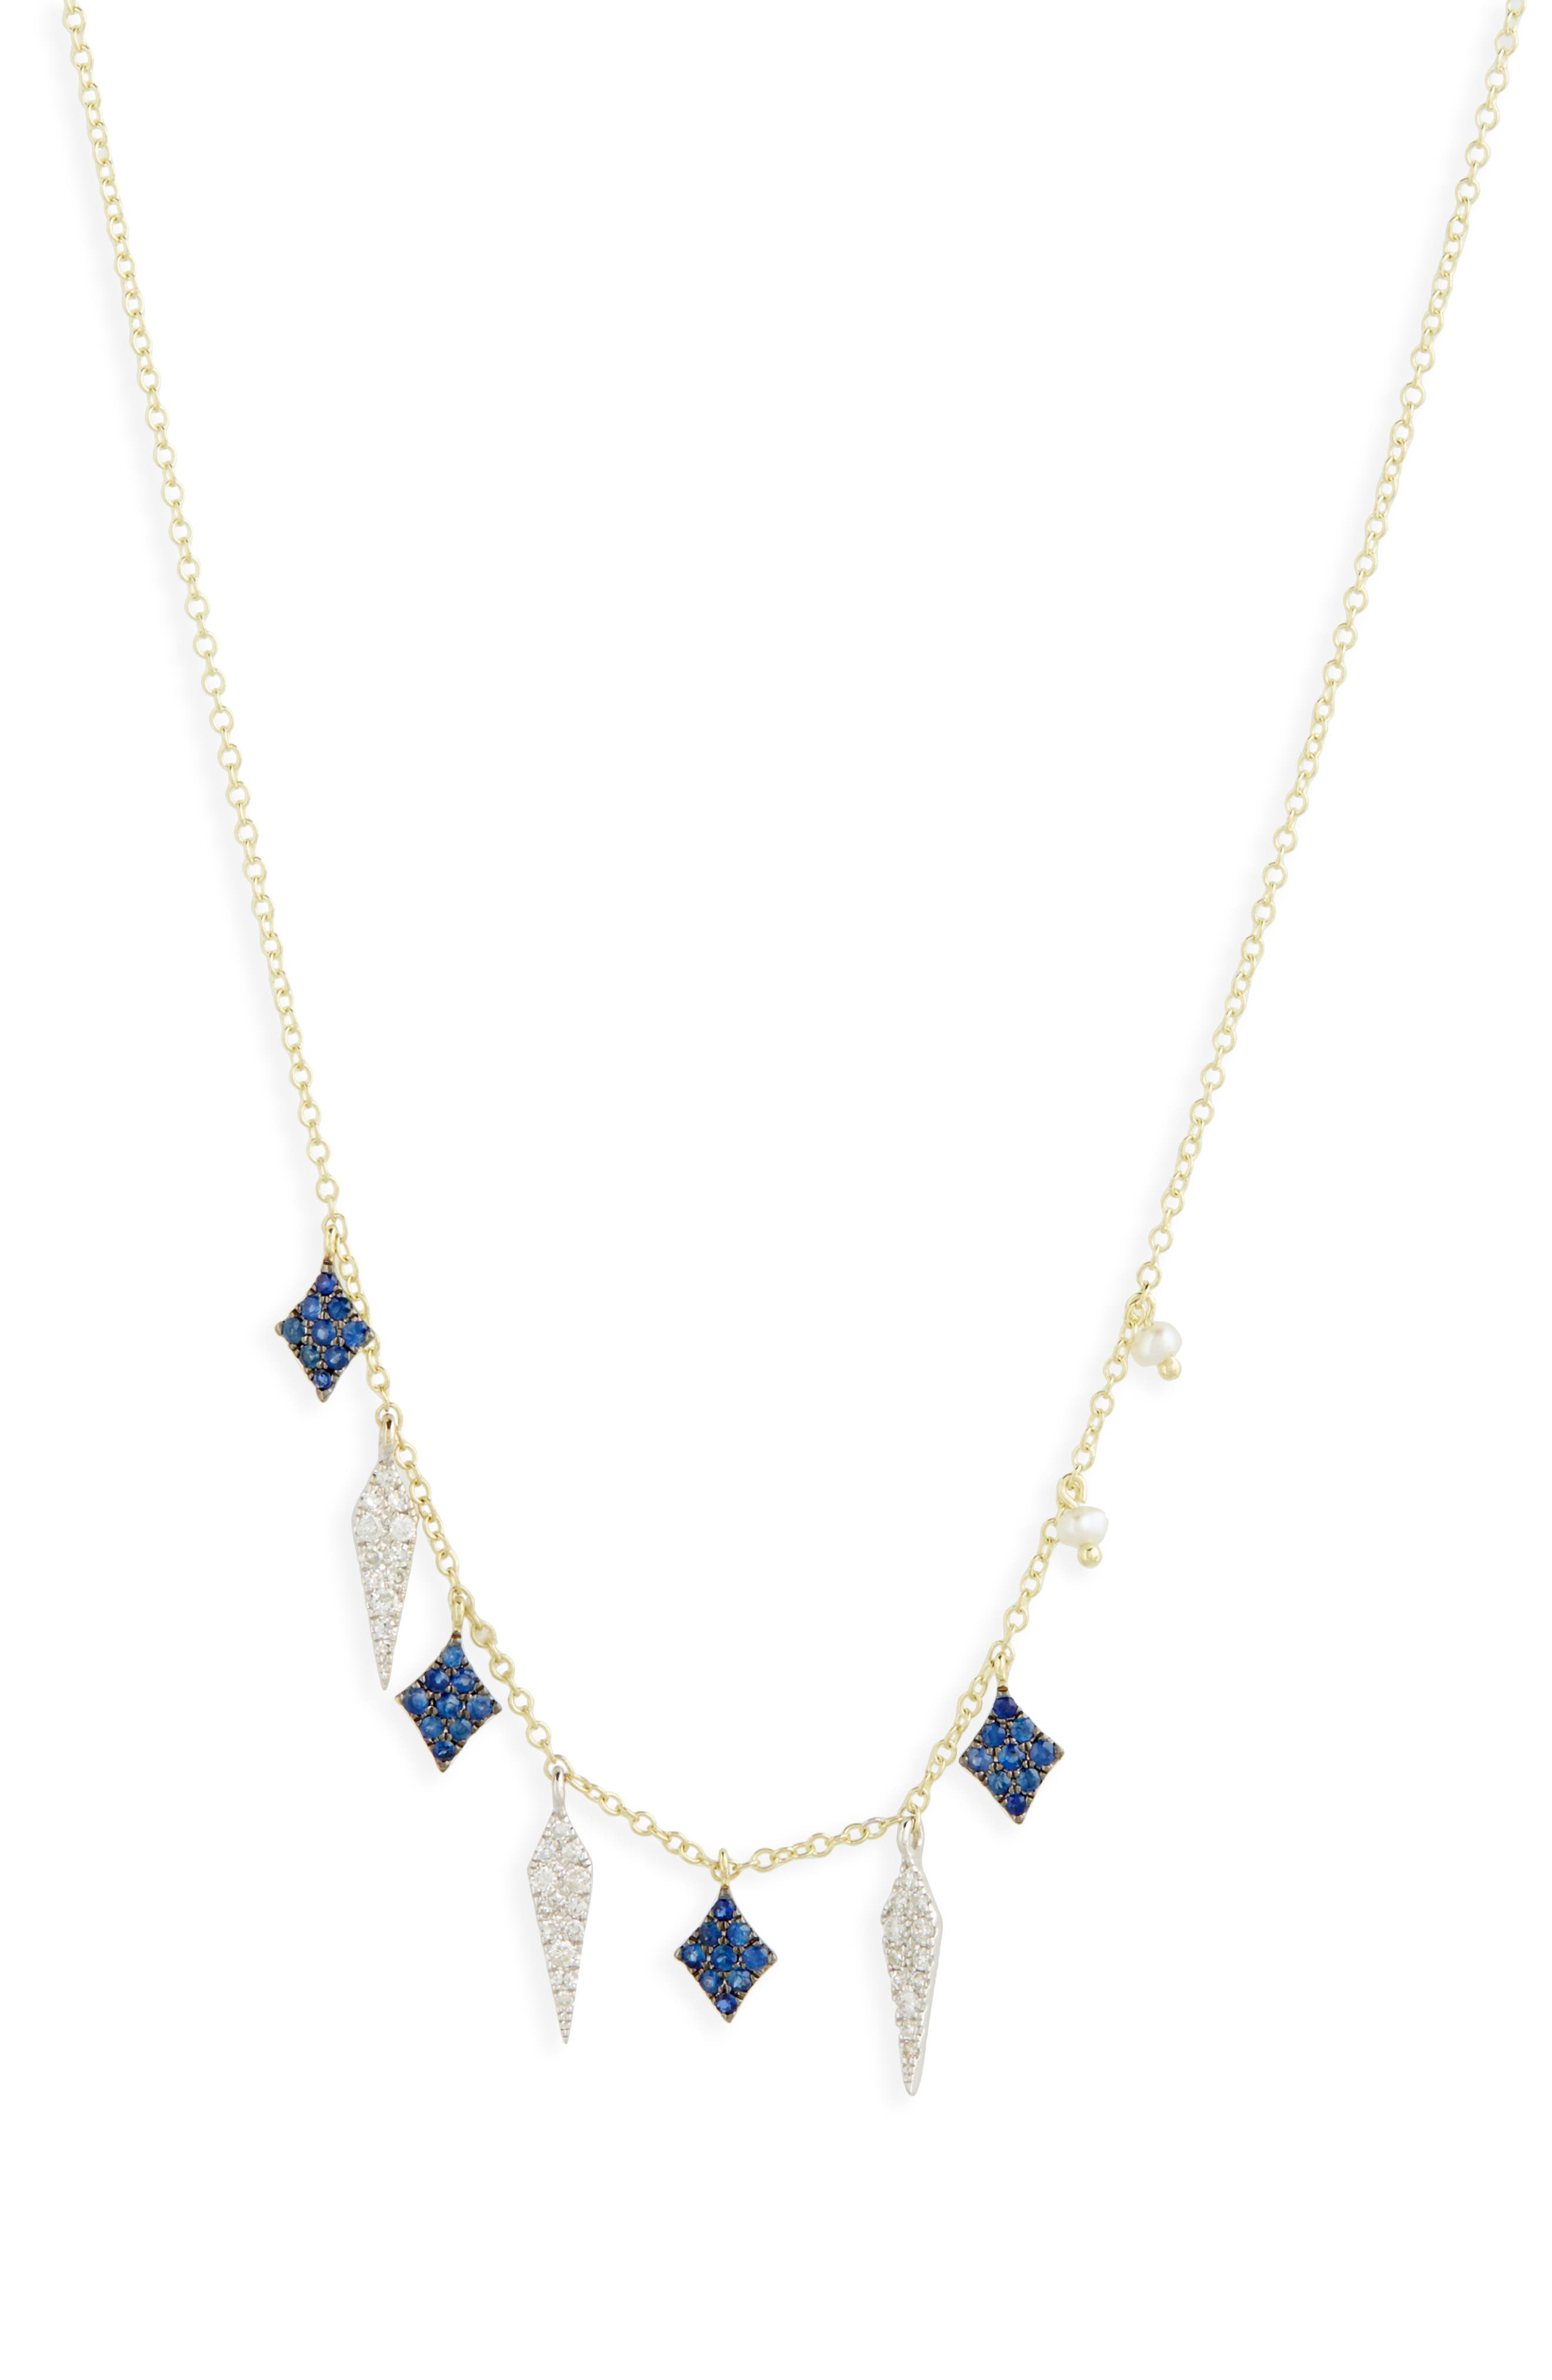 Miera T Diamond & Sapphire Charm Necklace,                             Alternate thumbnail 2, color,                             Yellow Gold